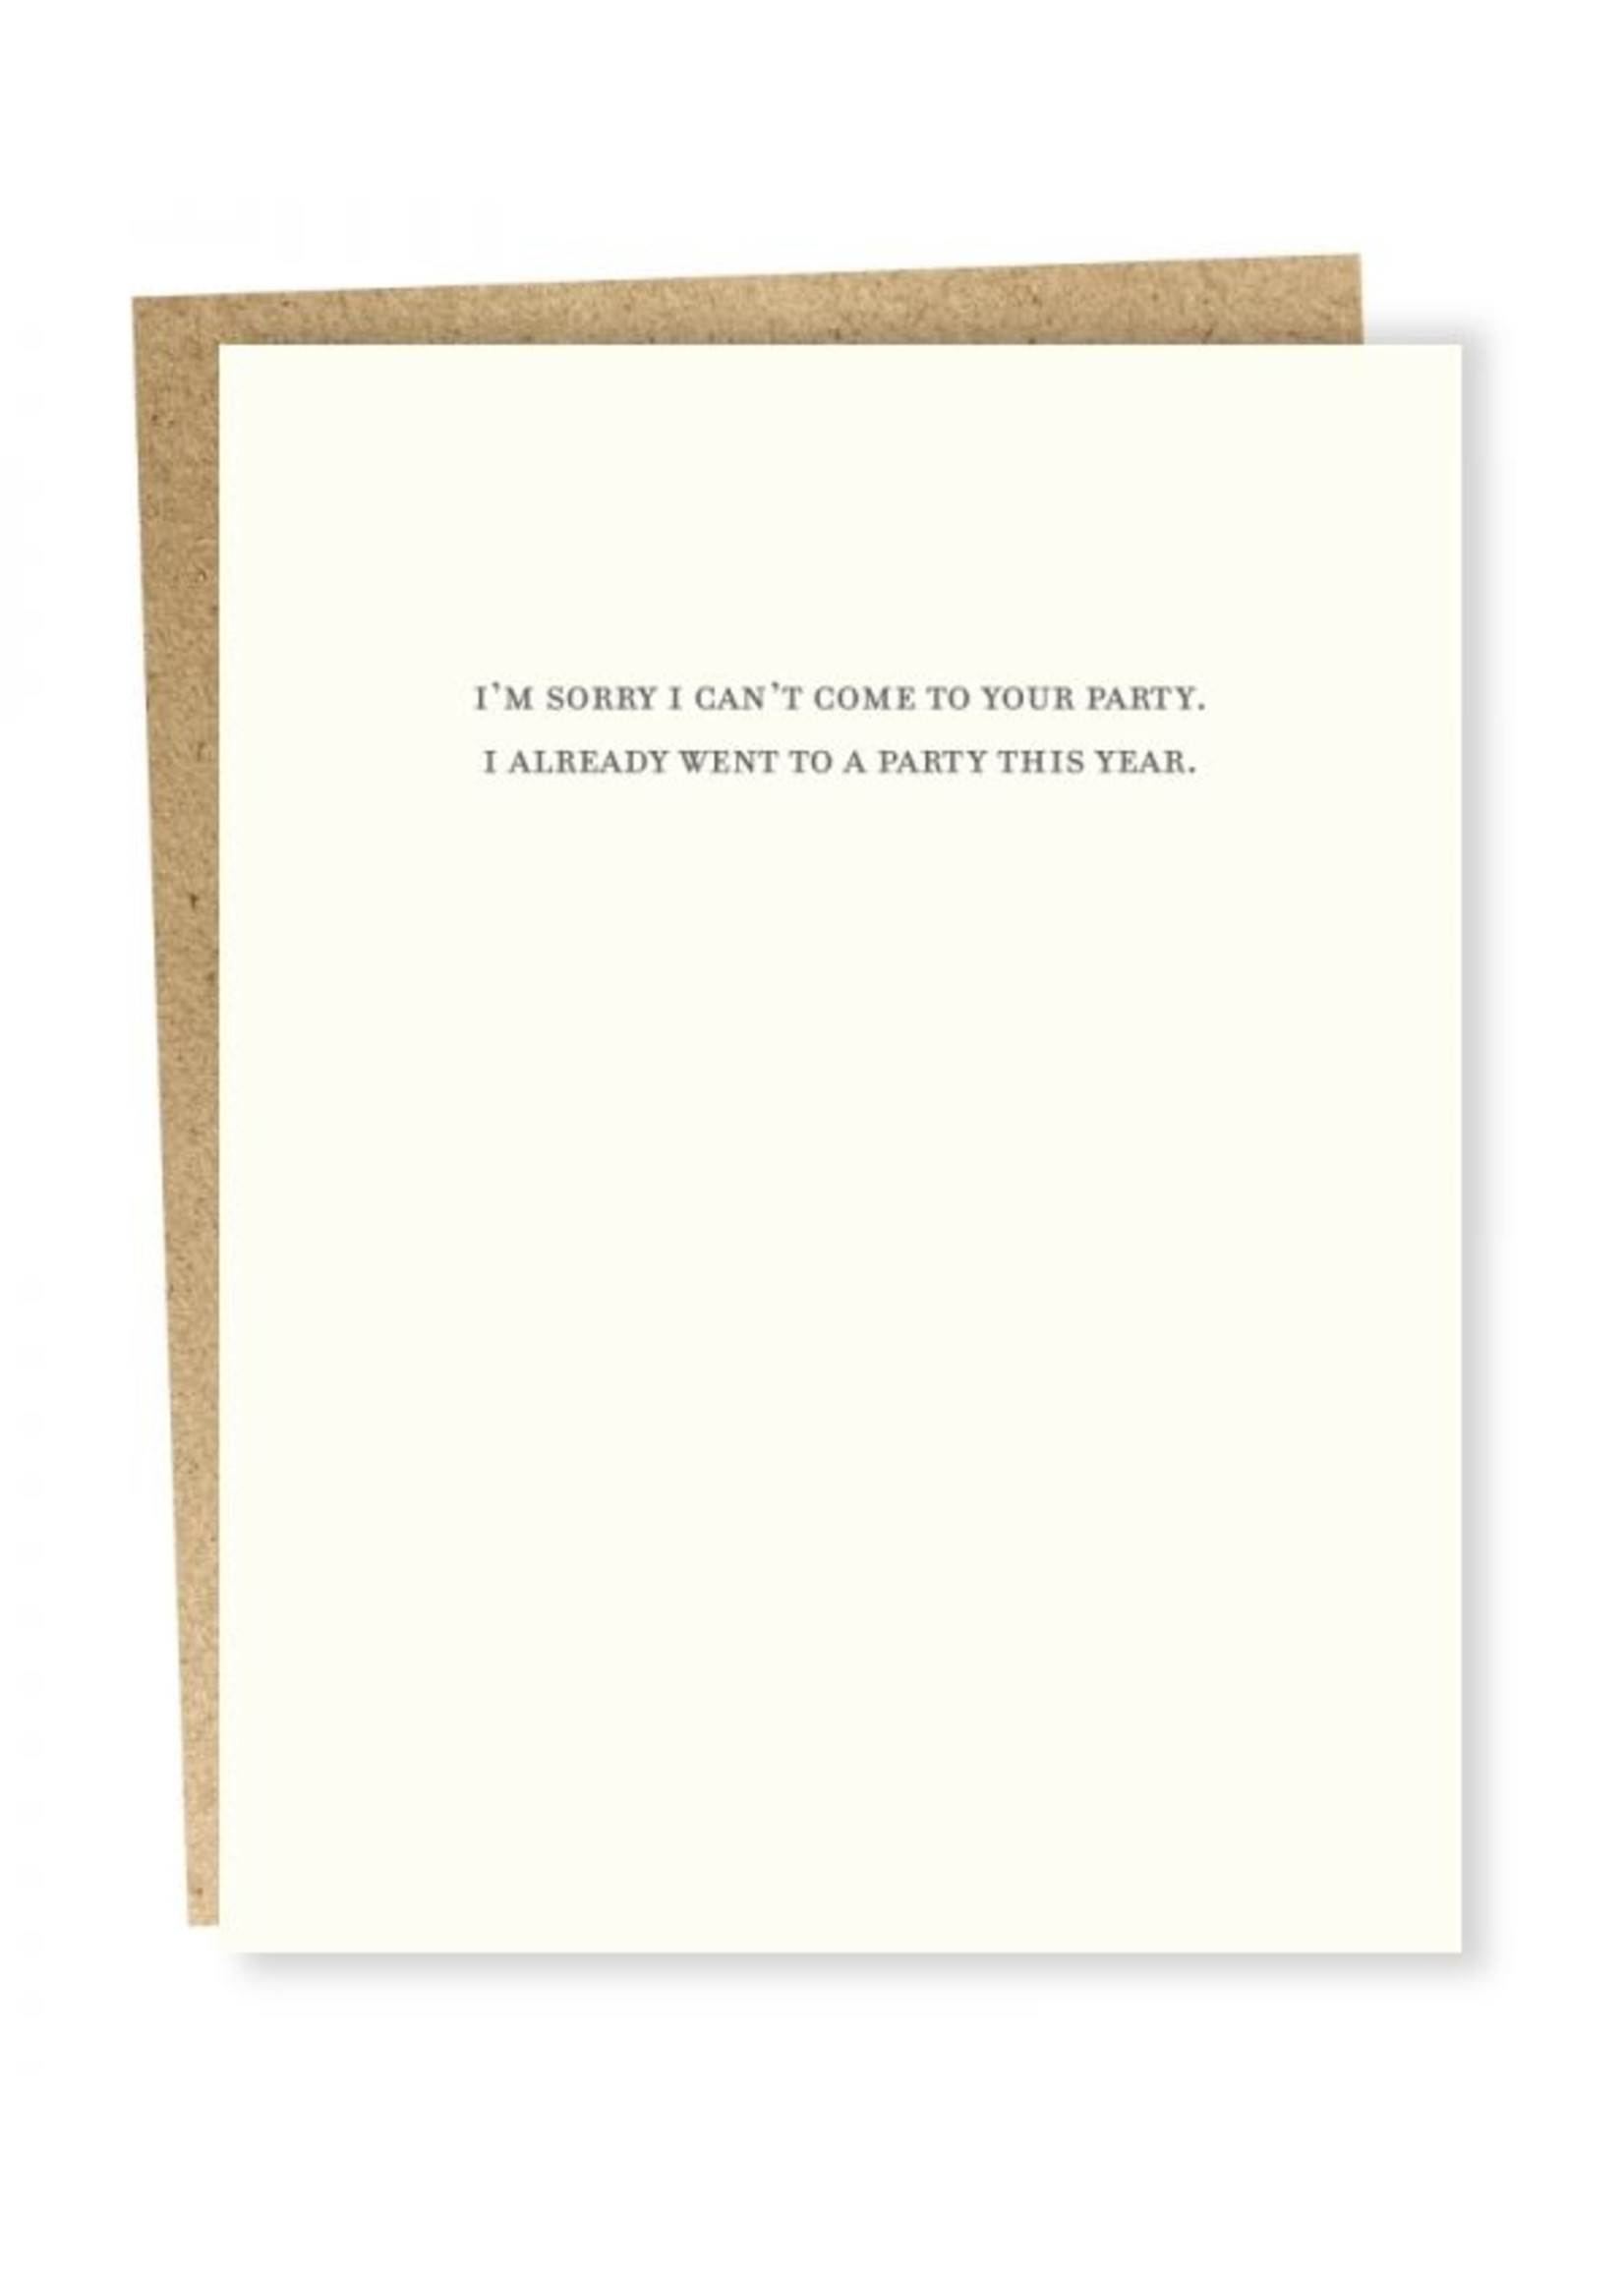 Sapling Press Sapling Card Confessions: Party